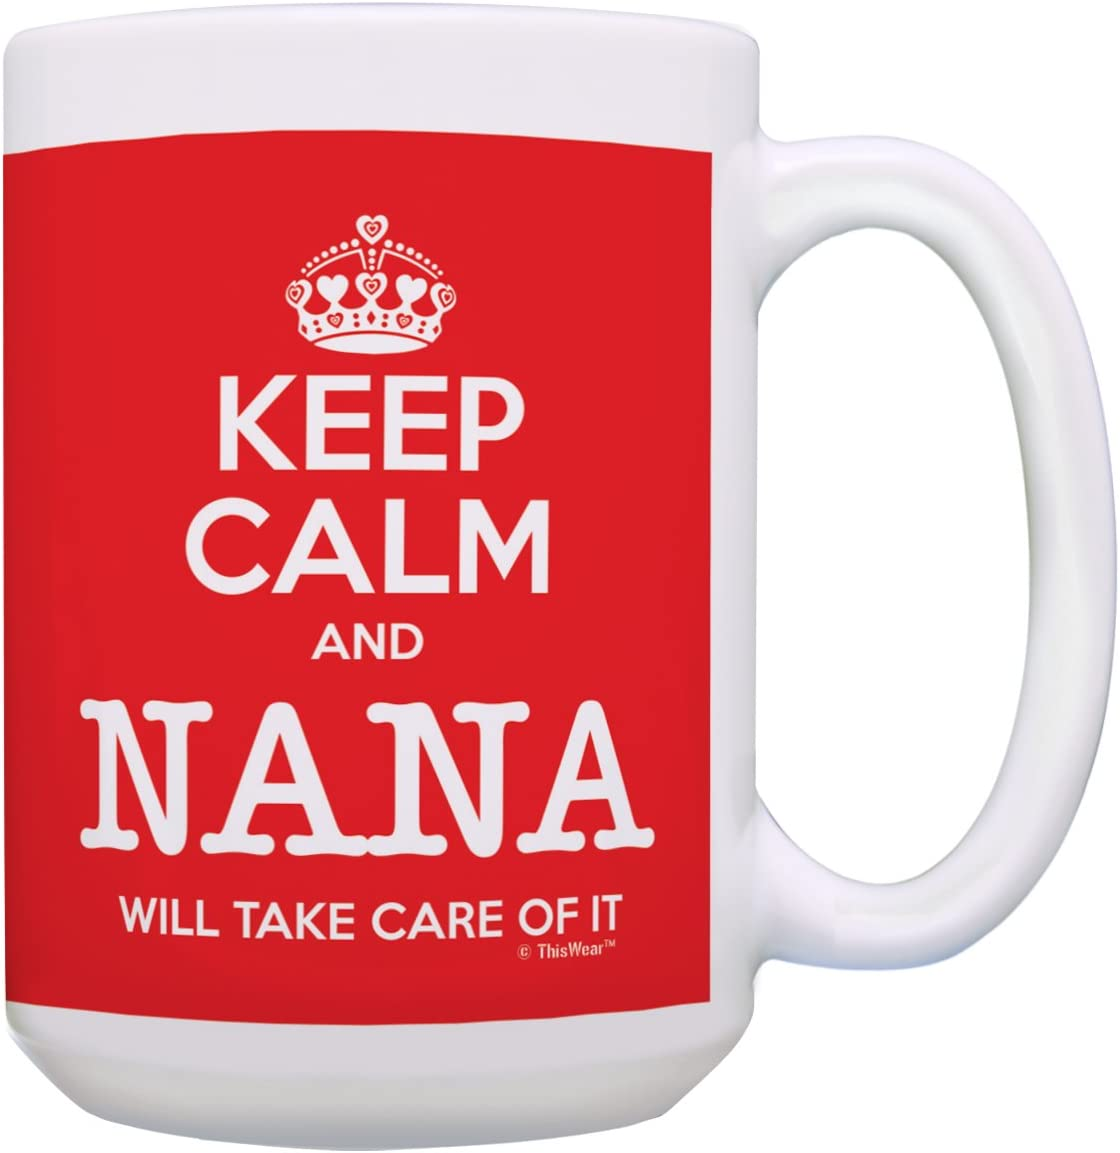 Mothers Day Gifts for Grandma Keep Very popular Care and Max 87% OFF Take Calm Nana Will